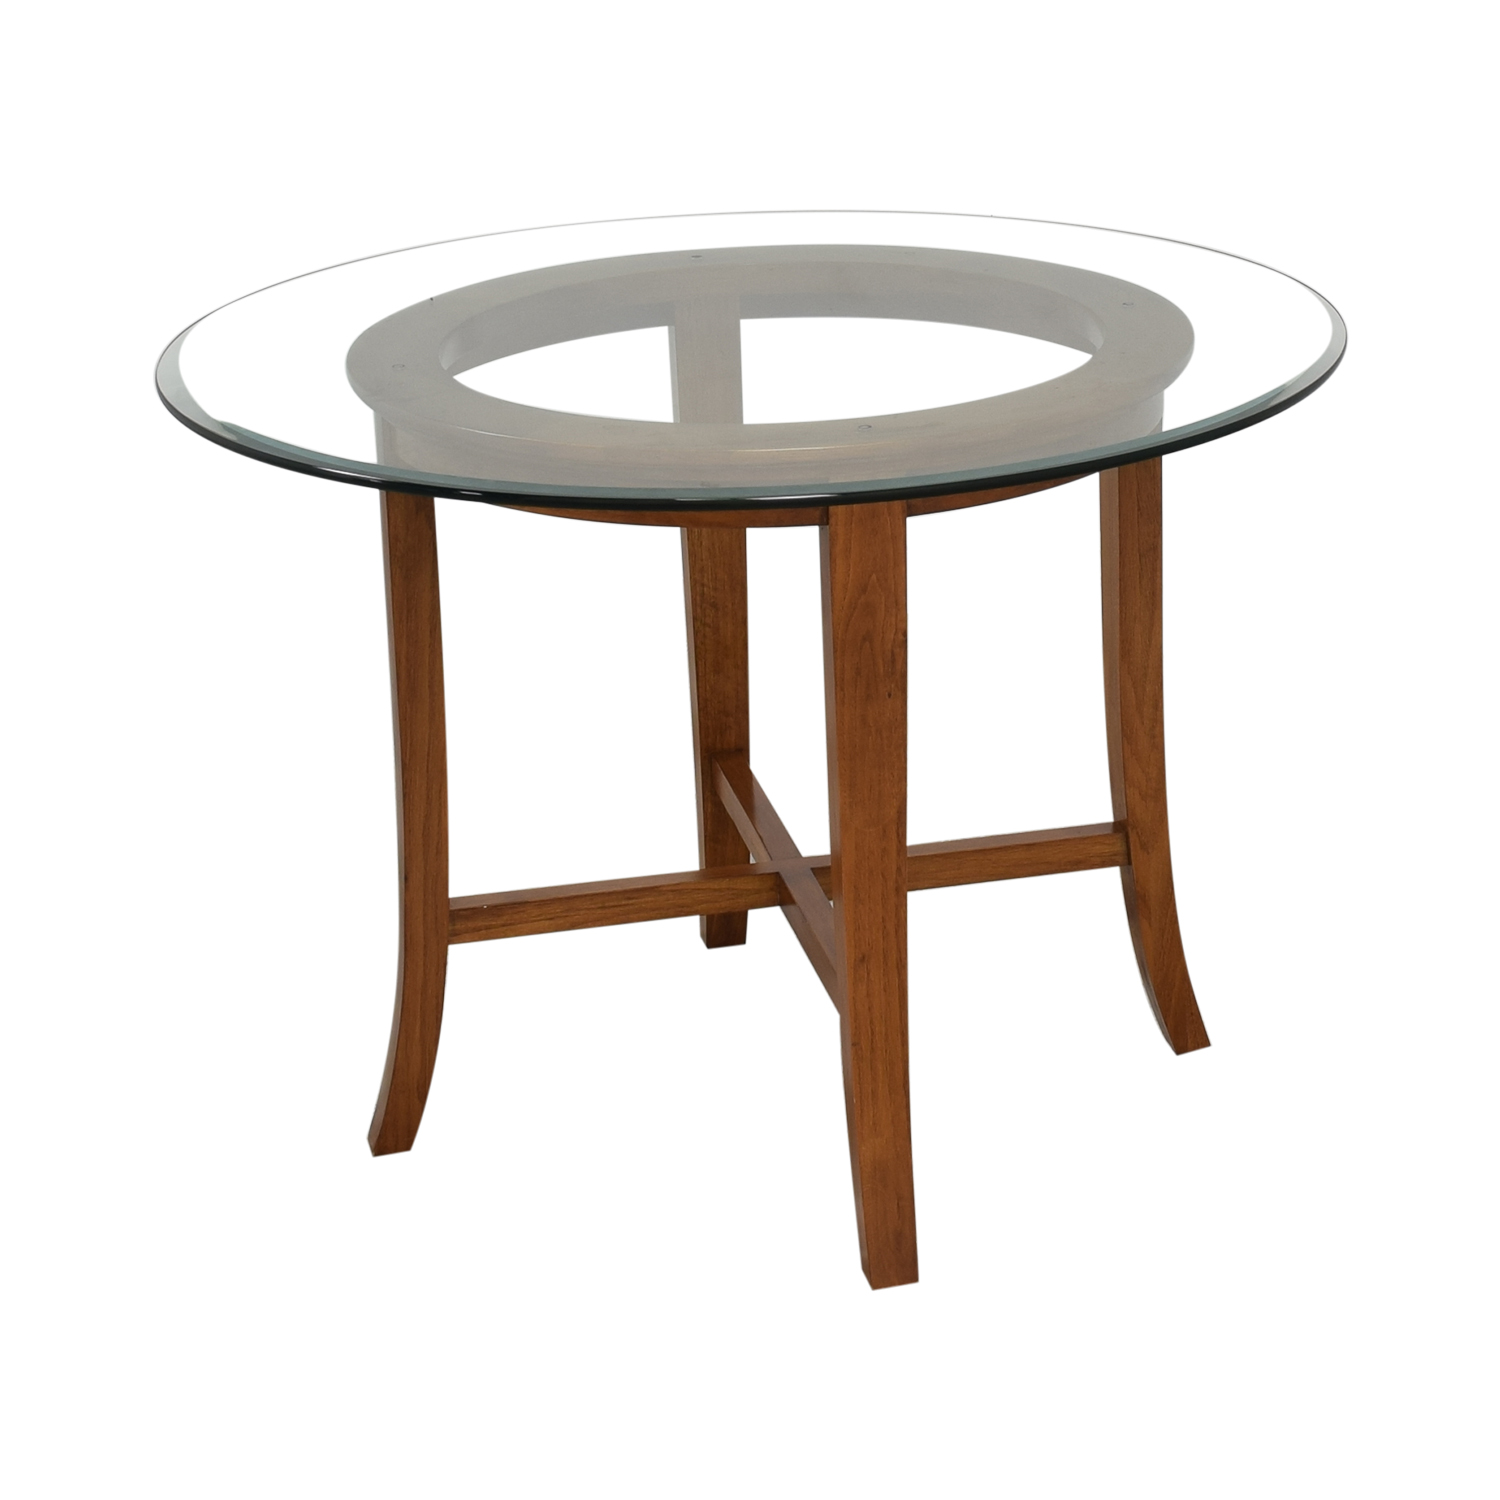 Crate & Barrel Crate & Barrel Halo Dining Table Tables